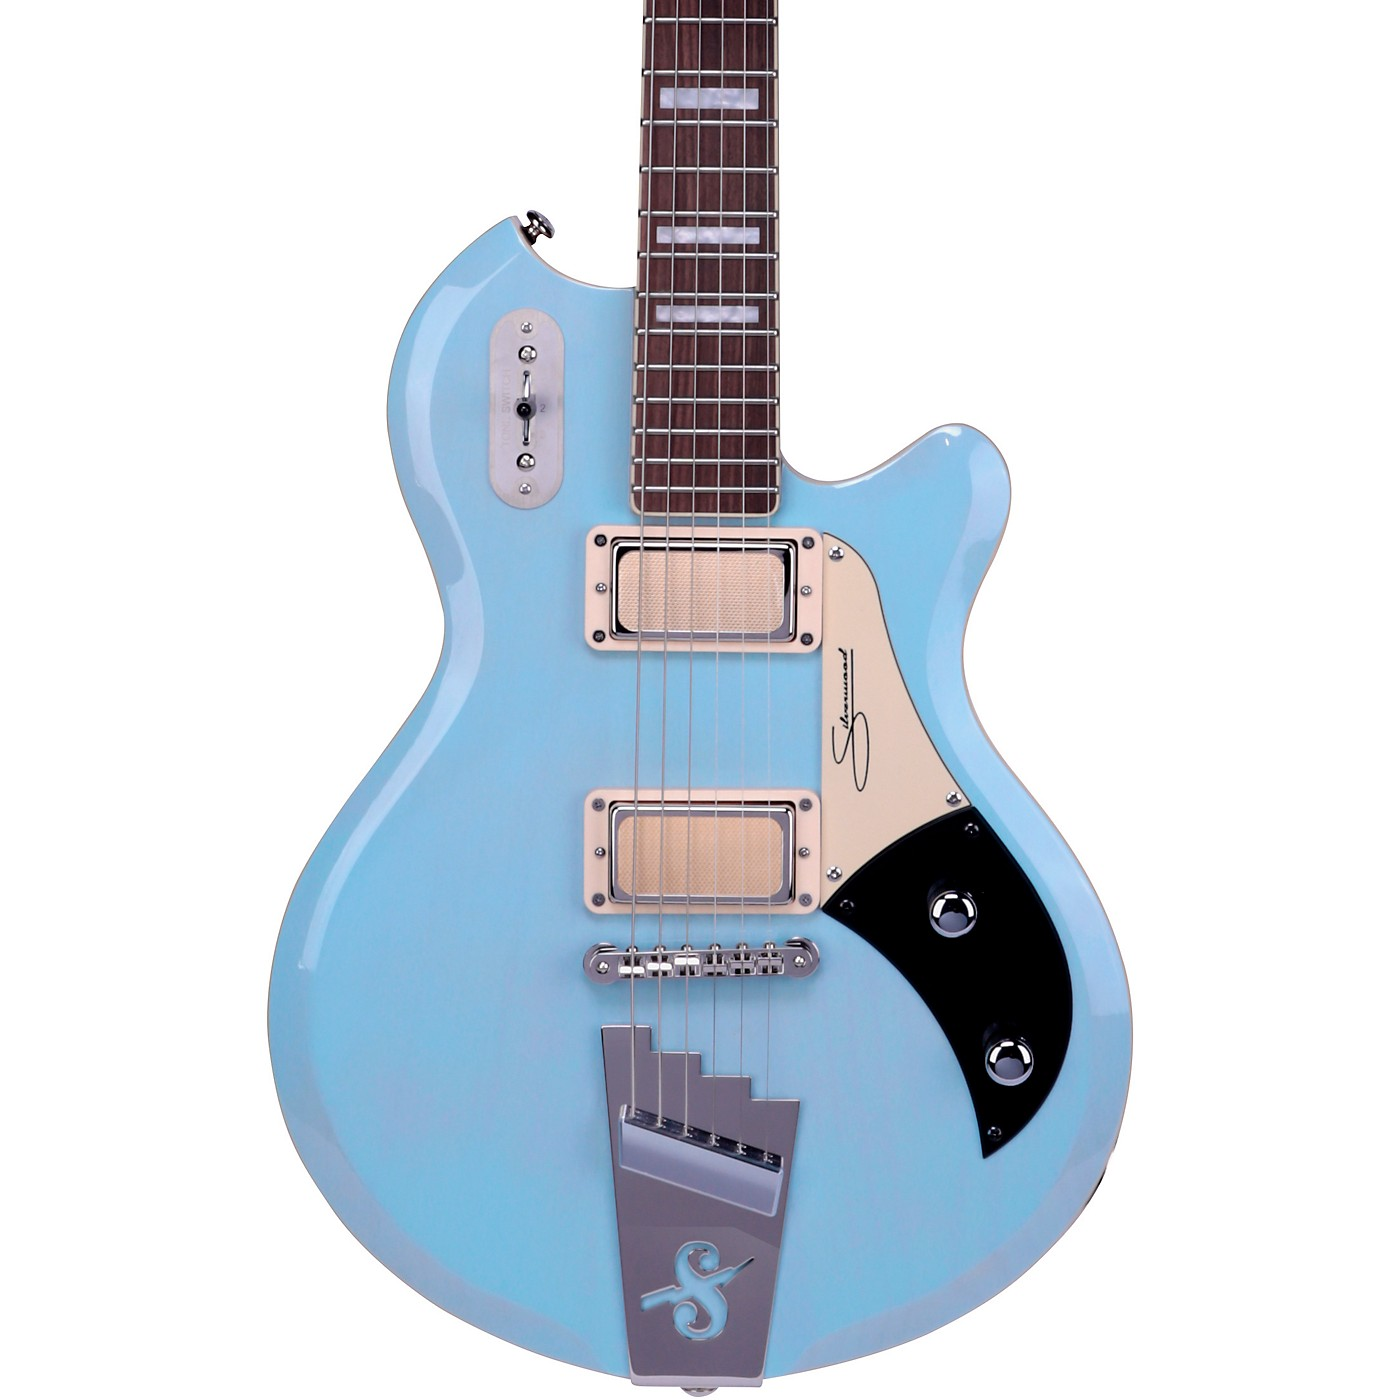 Supro 1296 Supro Silverwood Solid Body Electric Guitar thumbnail